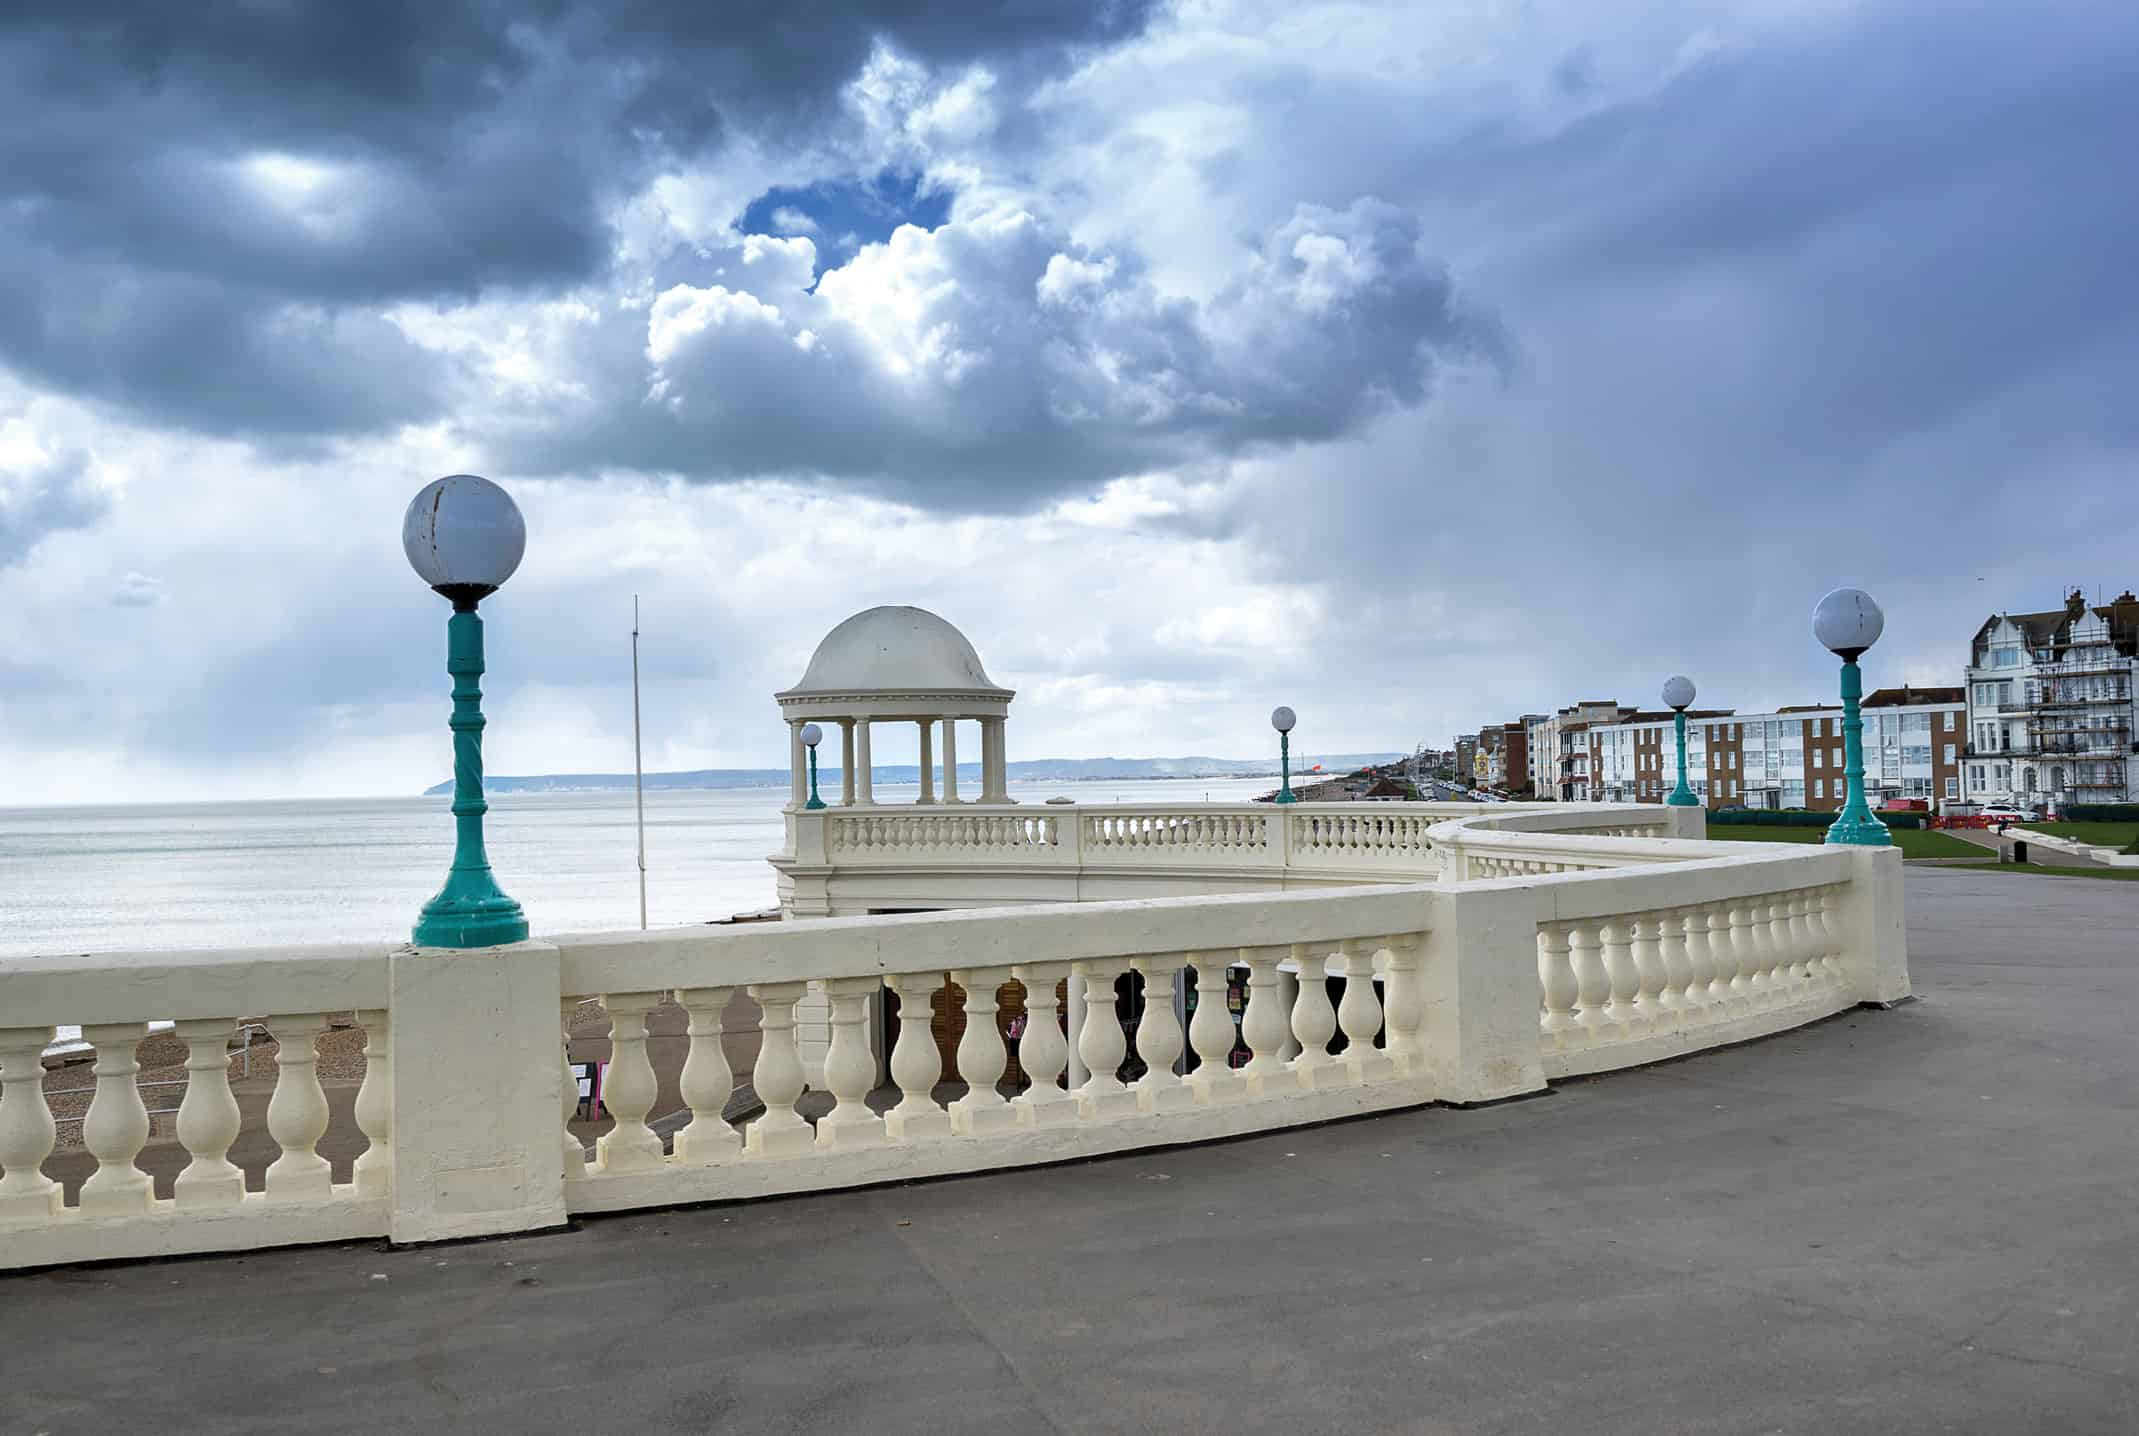 Blog: News and updates from St. Vincent's Bexhill, Location Bexhill Seaside